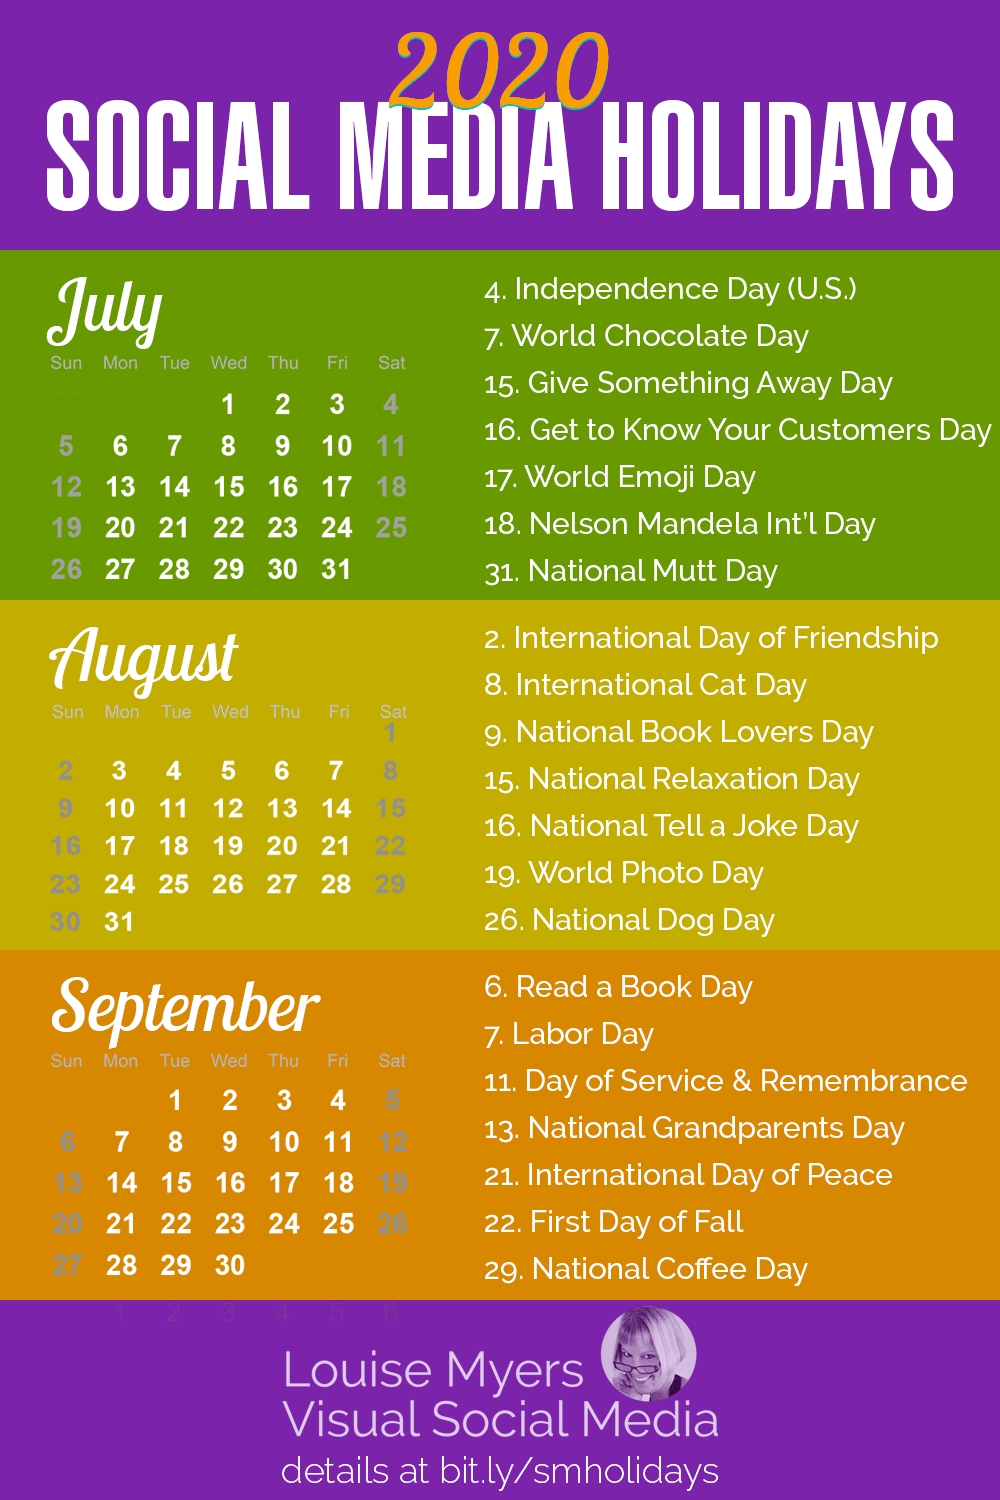 84 Social Media Holidays You Need In 2020: Indispensable! for Special Days In The Business Calendar 2020